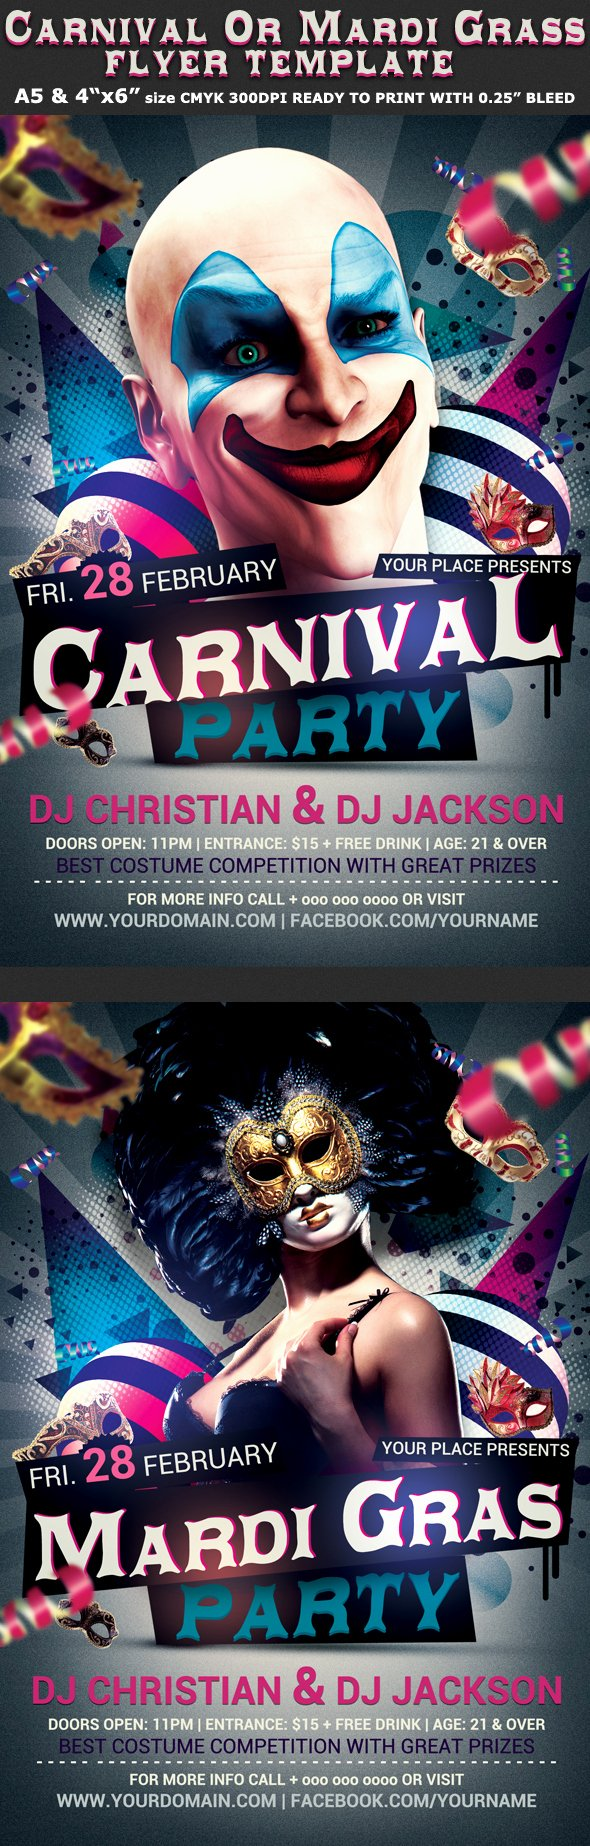 Carnival Flyer Template Free Inspirational Carnival N Mardi Gras Party Flyer Template